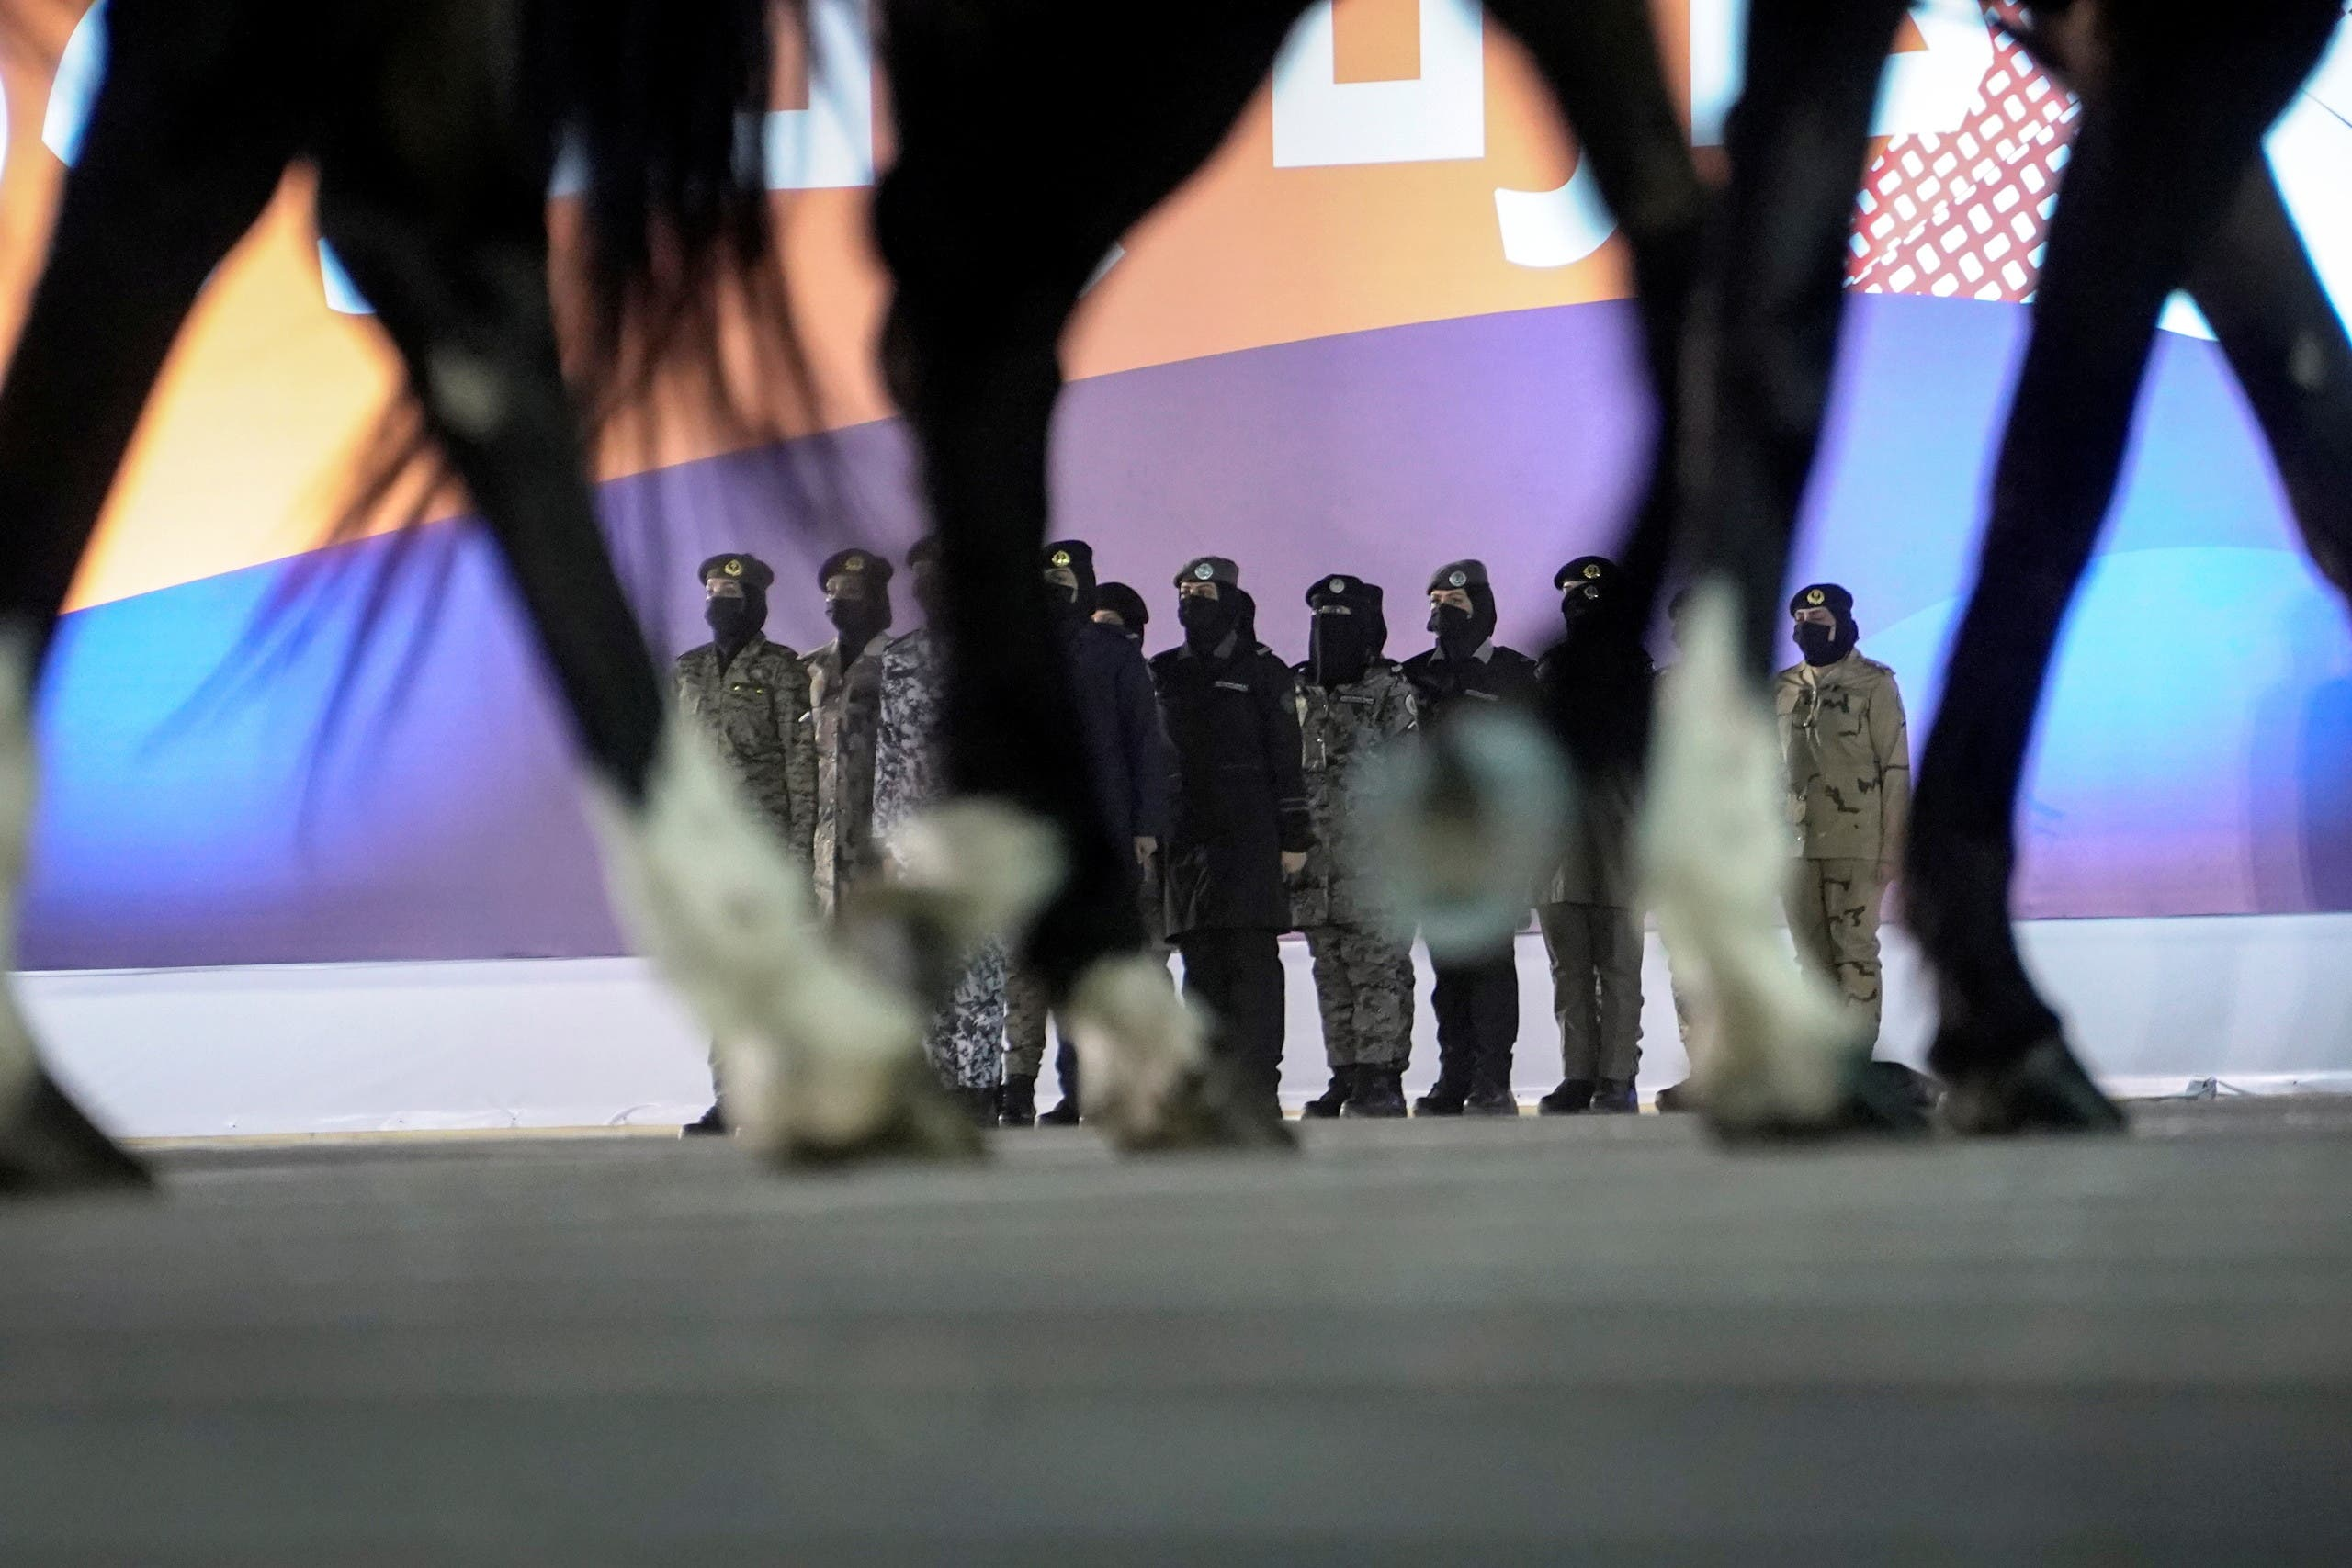 Members of a female military unit participate in a celebratory march past during the Saudi National Day celebrations in Riyadh, Saudi Arabia, September 23, 2021. (Reuters)